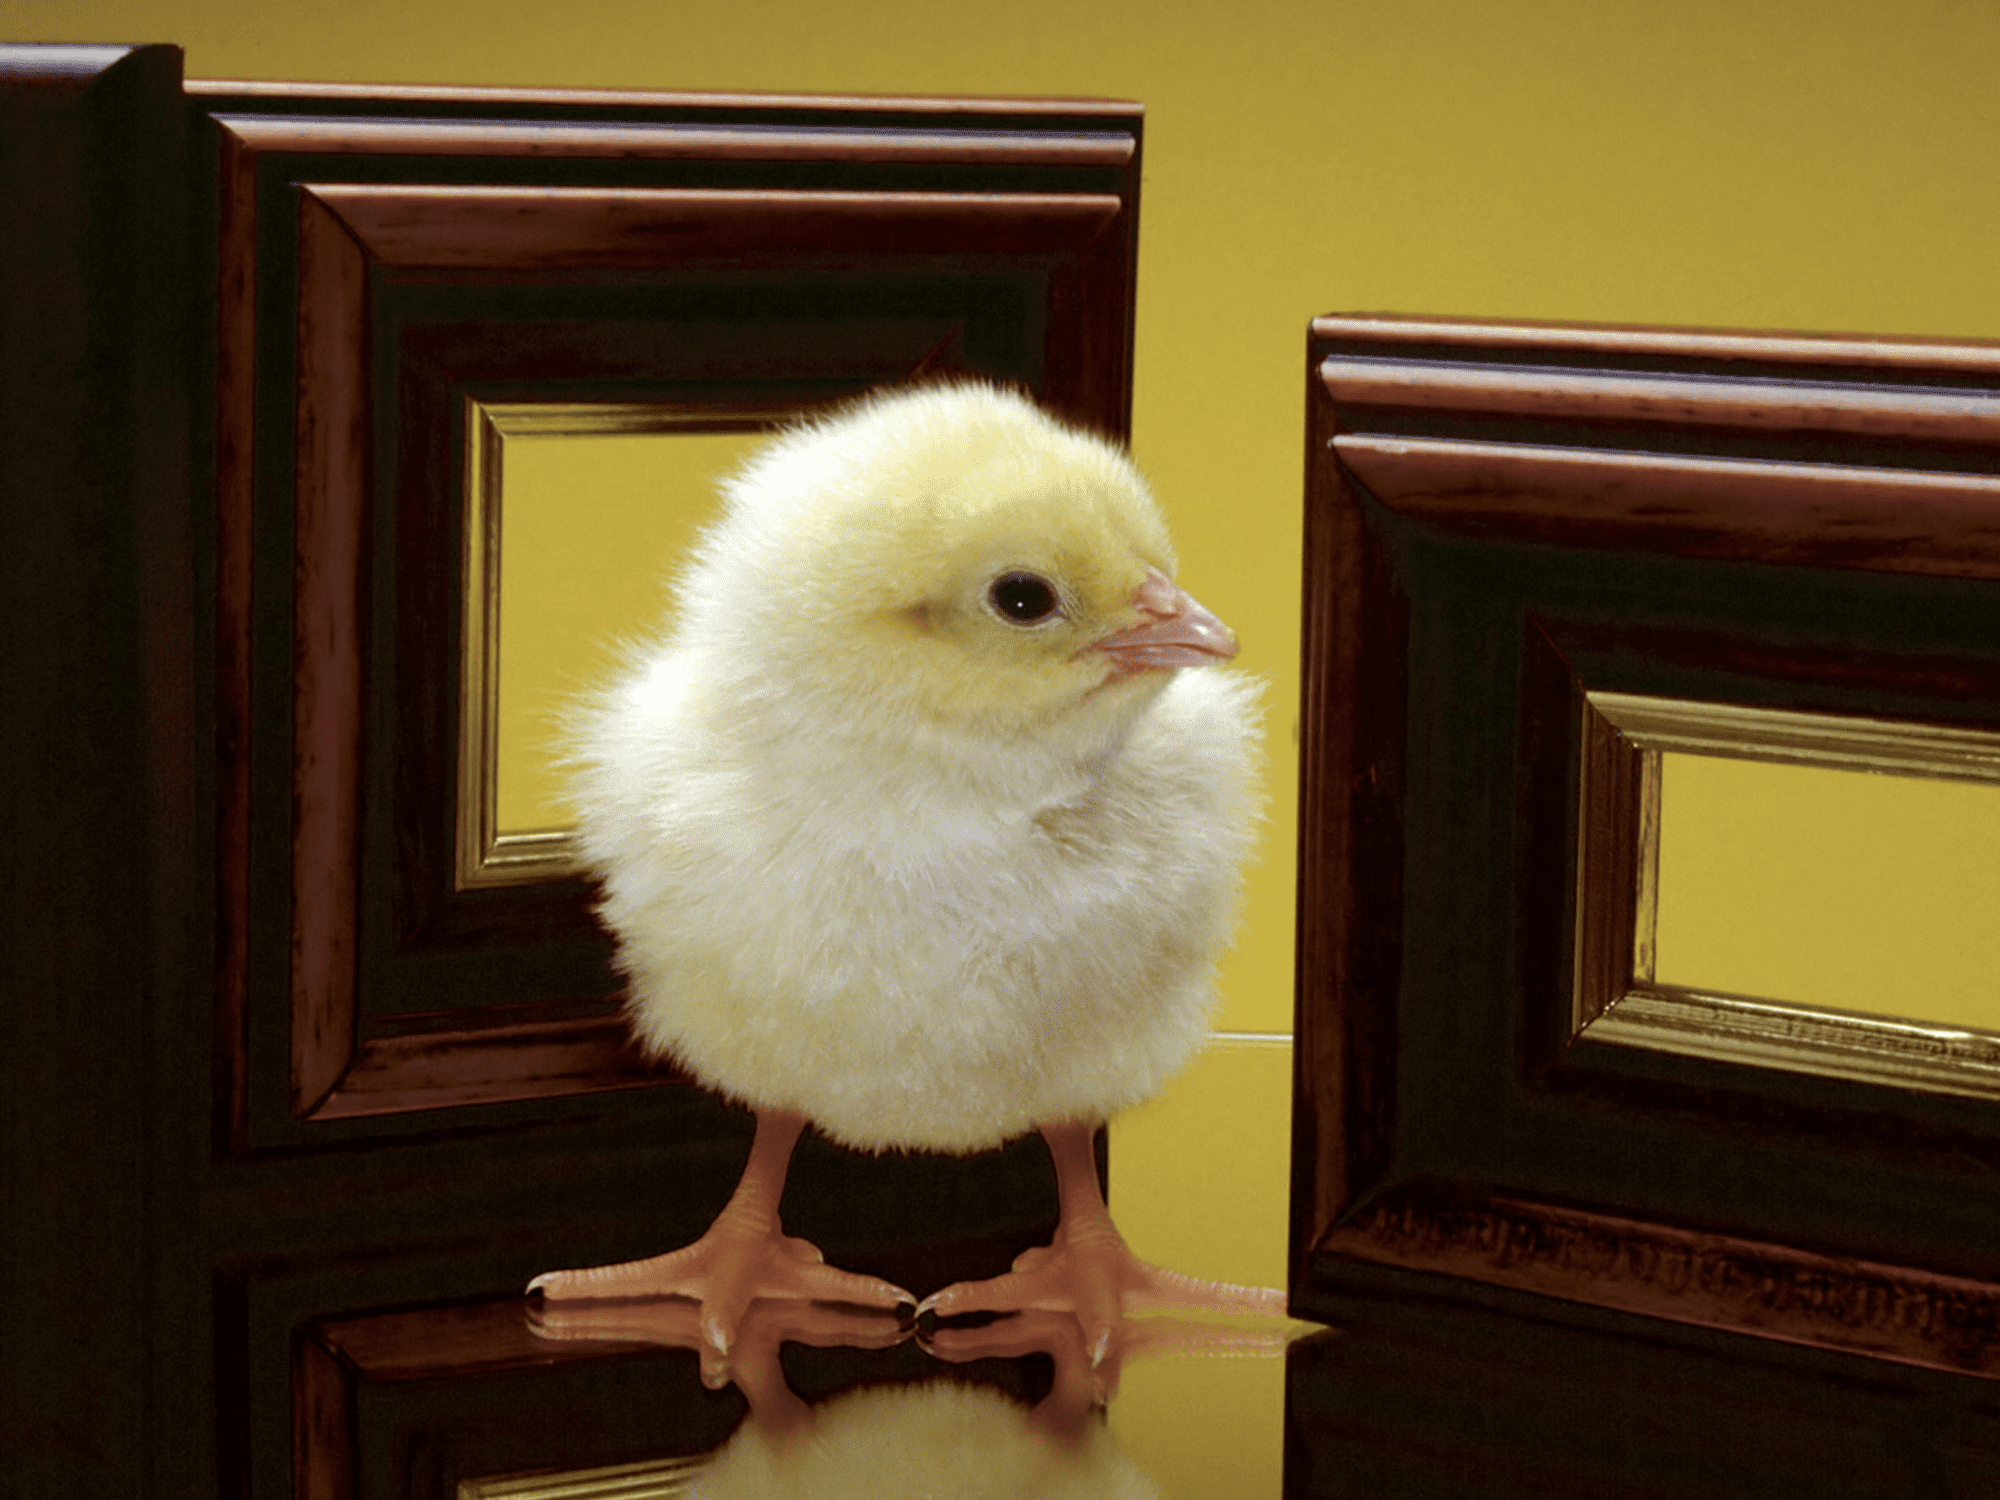 Free Easter wallpaper featuring a little chick